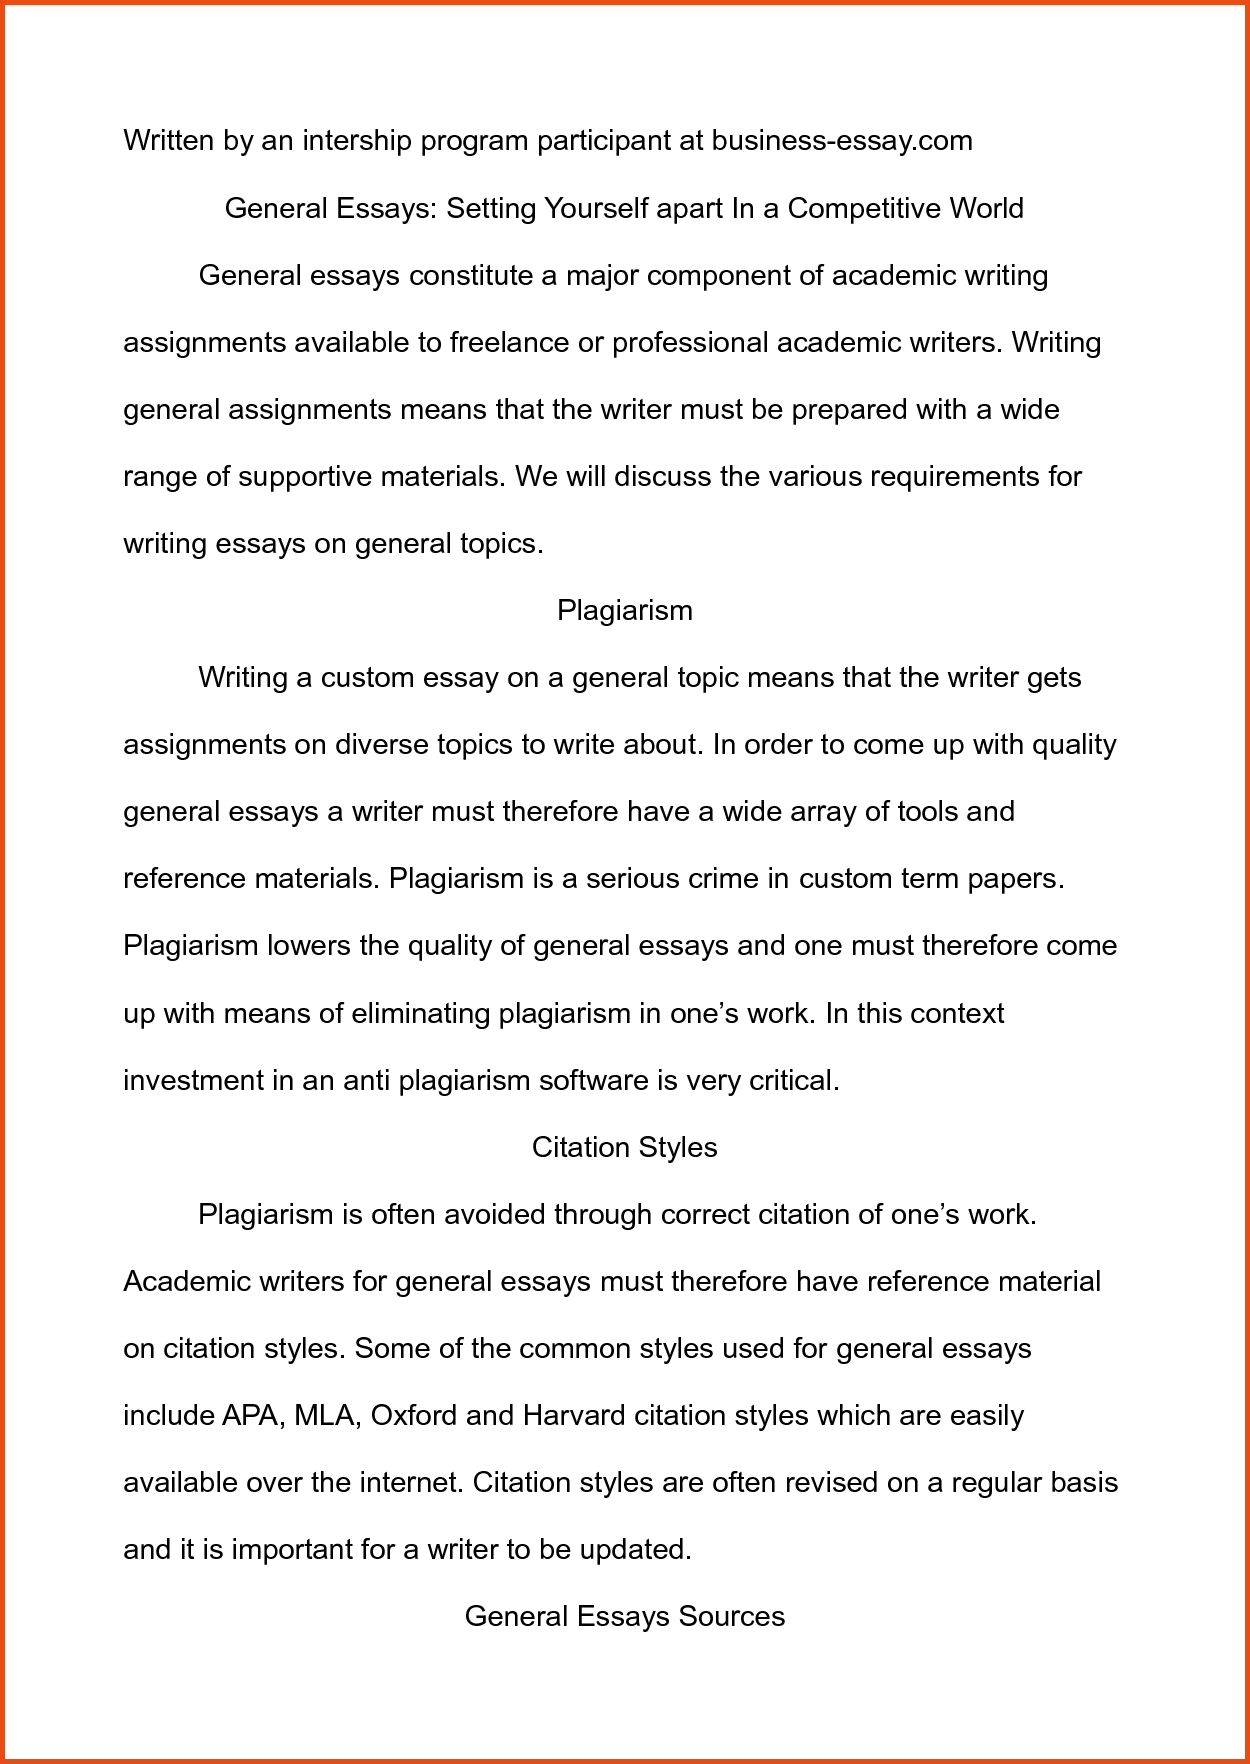 010 College Essays About Yourself Writings And Introducing Myself Introduce Intende Writing Fearsome Essay Example Examples A Application Full